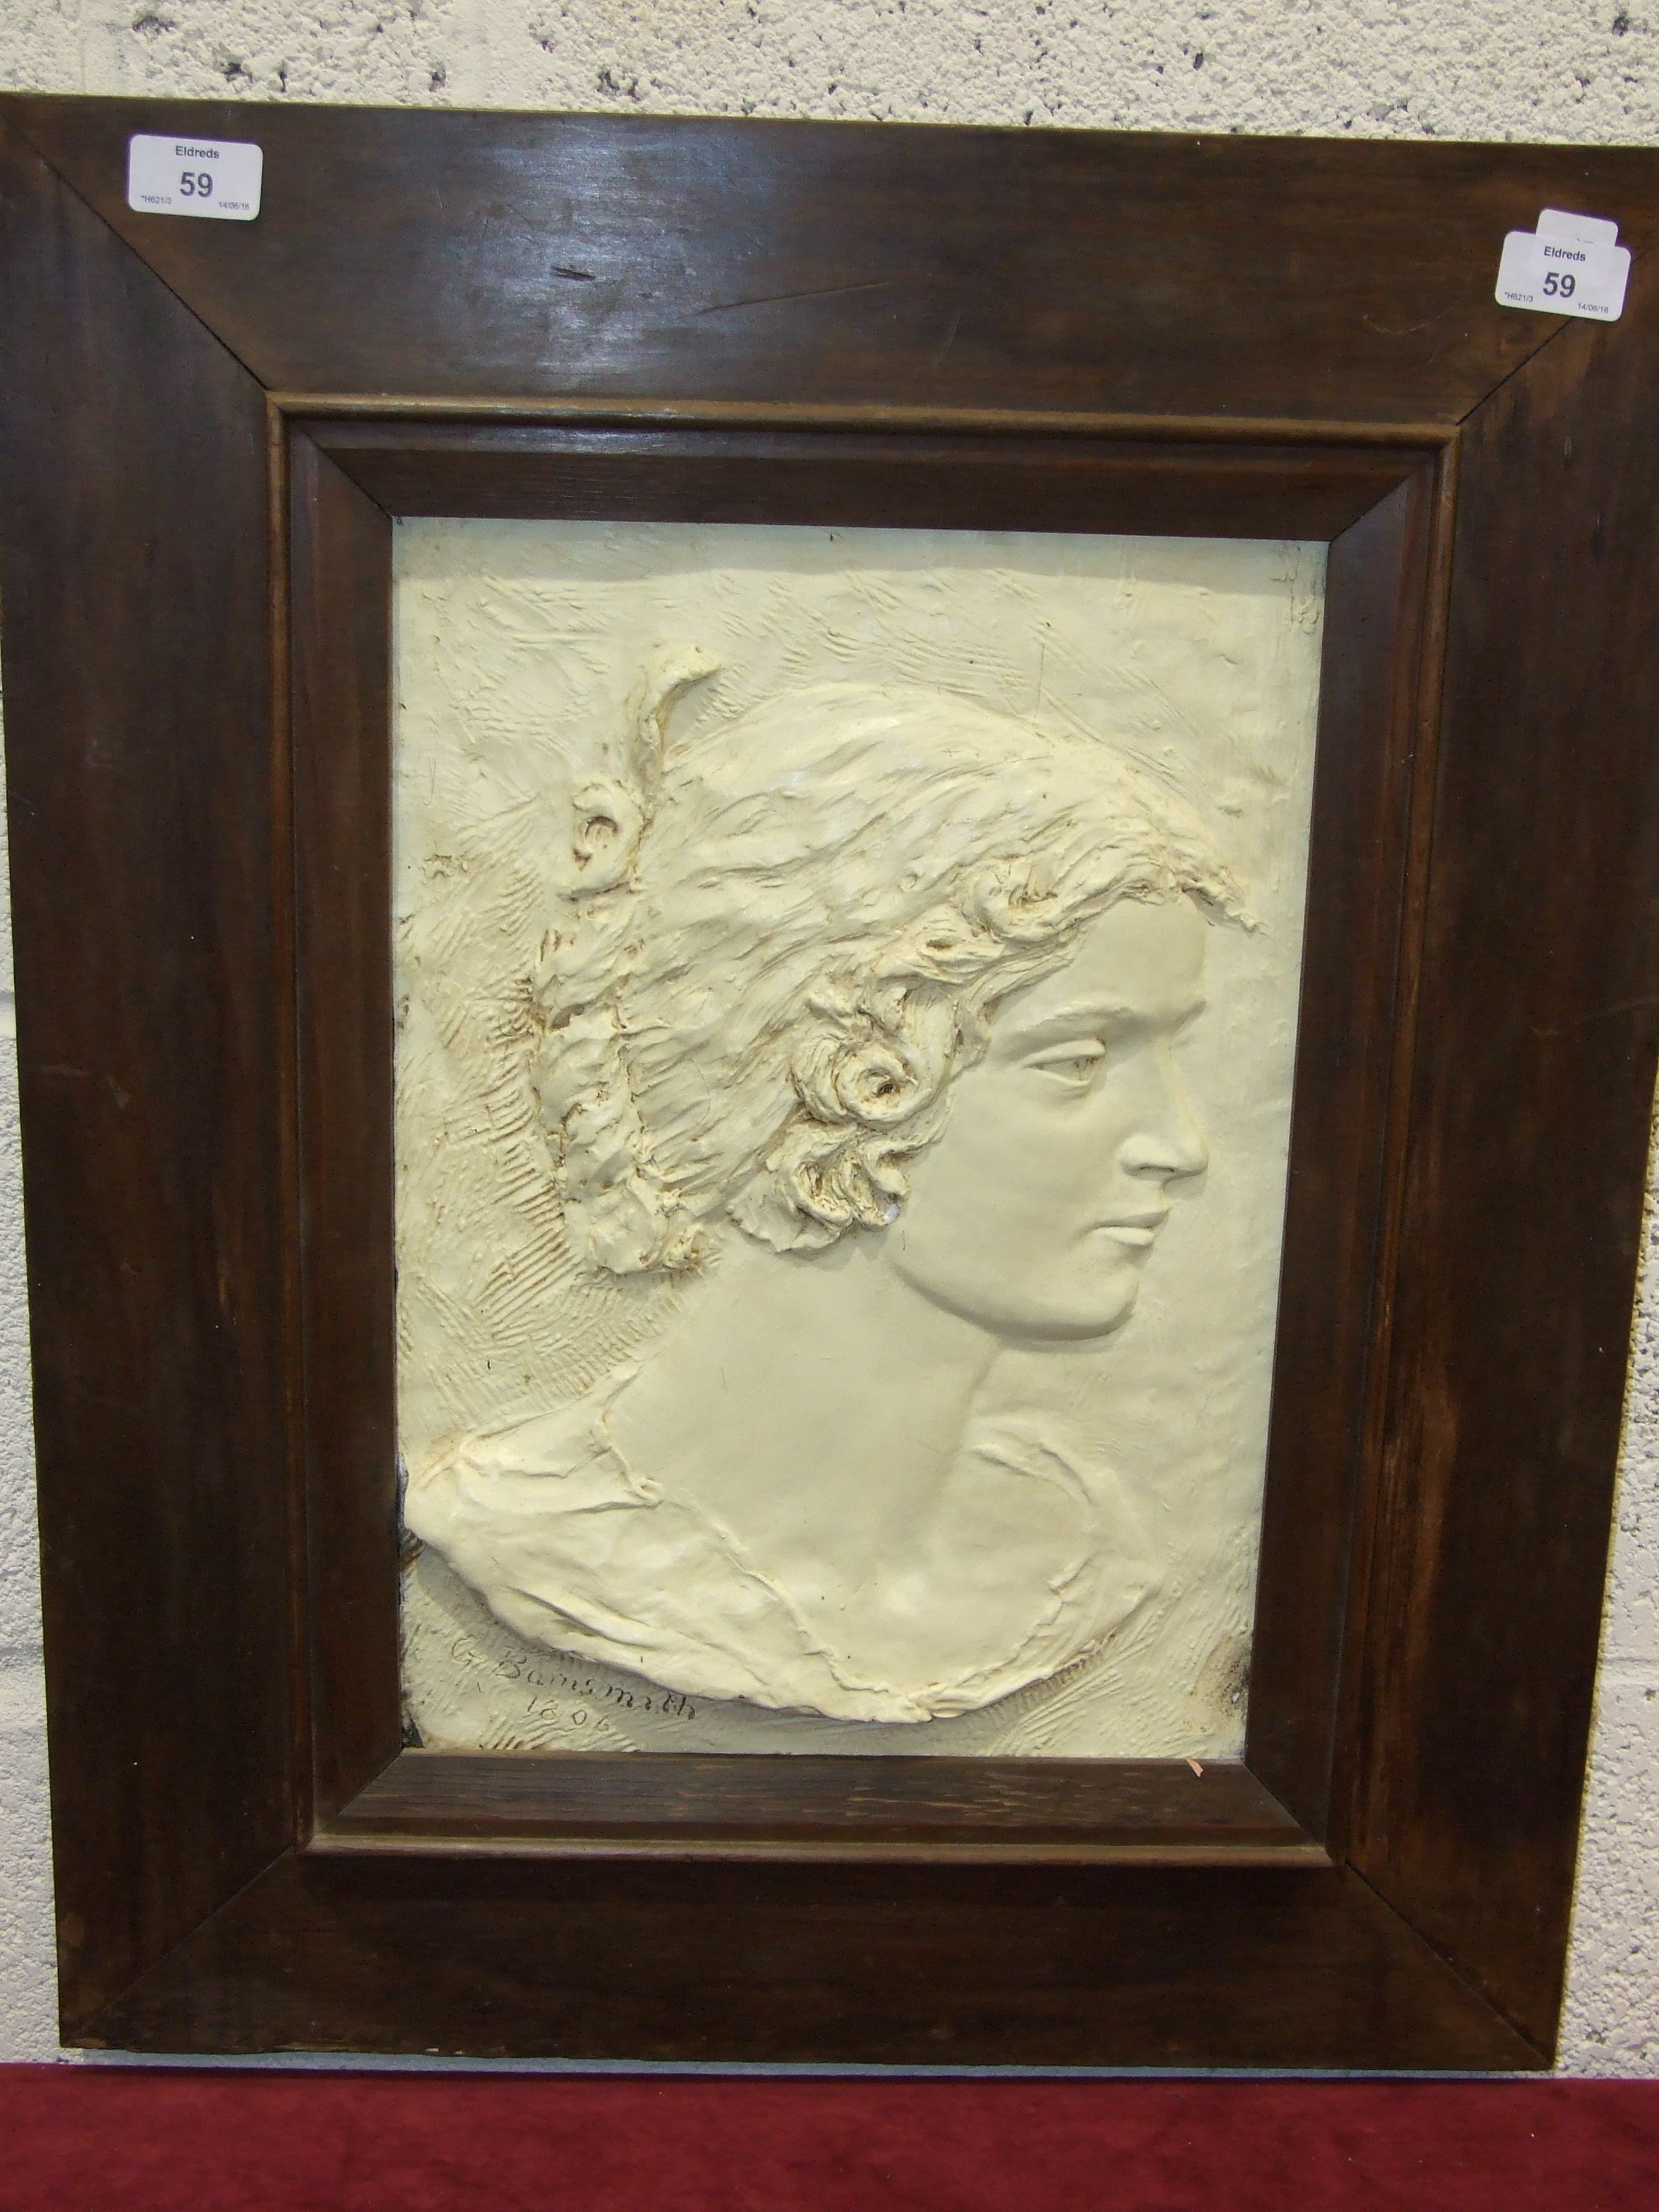 Lot 59 - G Barnsmith, a bronzed plaster plaque bust of a young woman, signed and dated, 1806, 39.5 x 28cm.